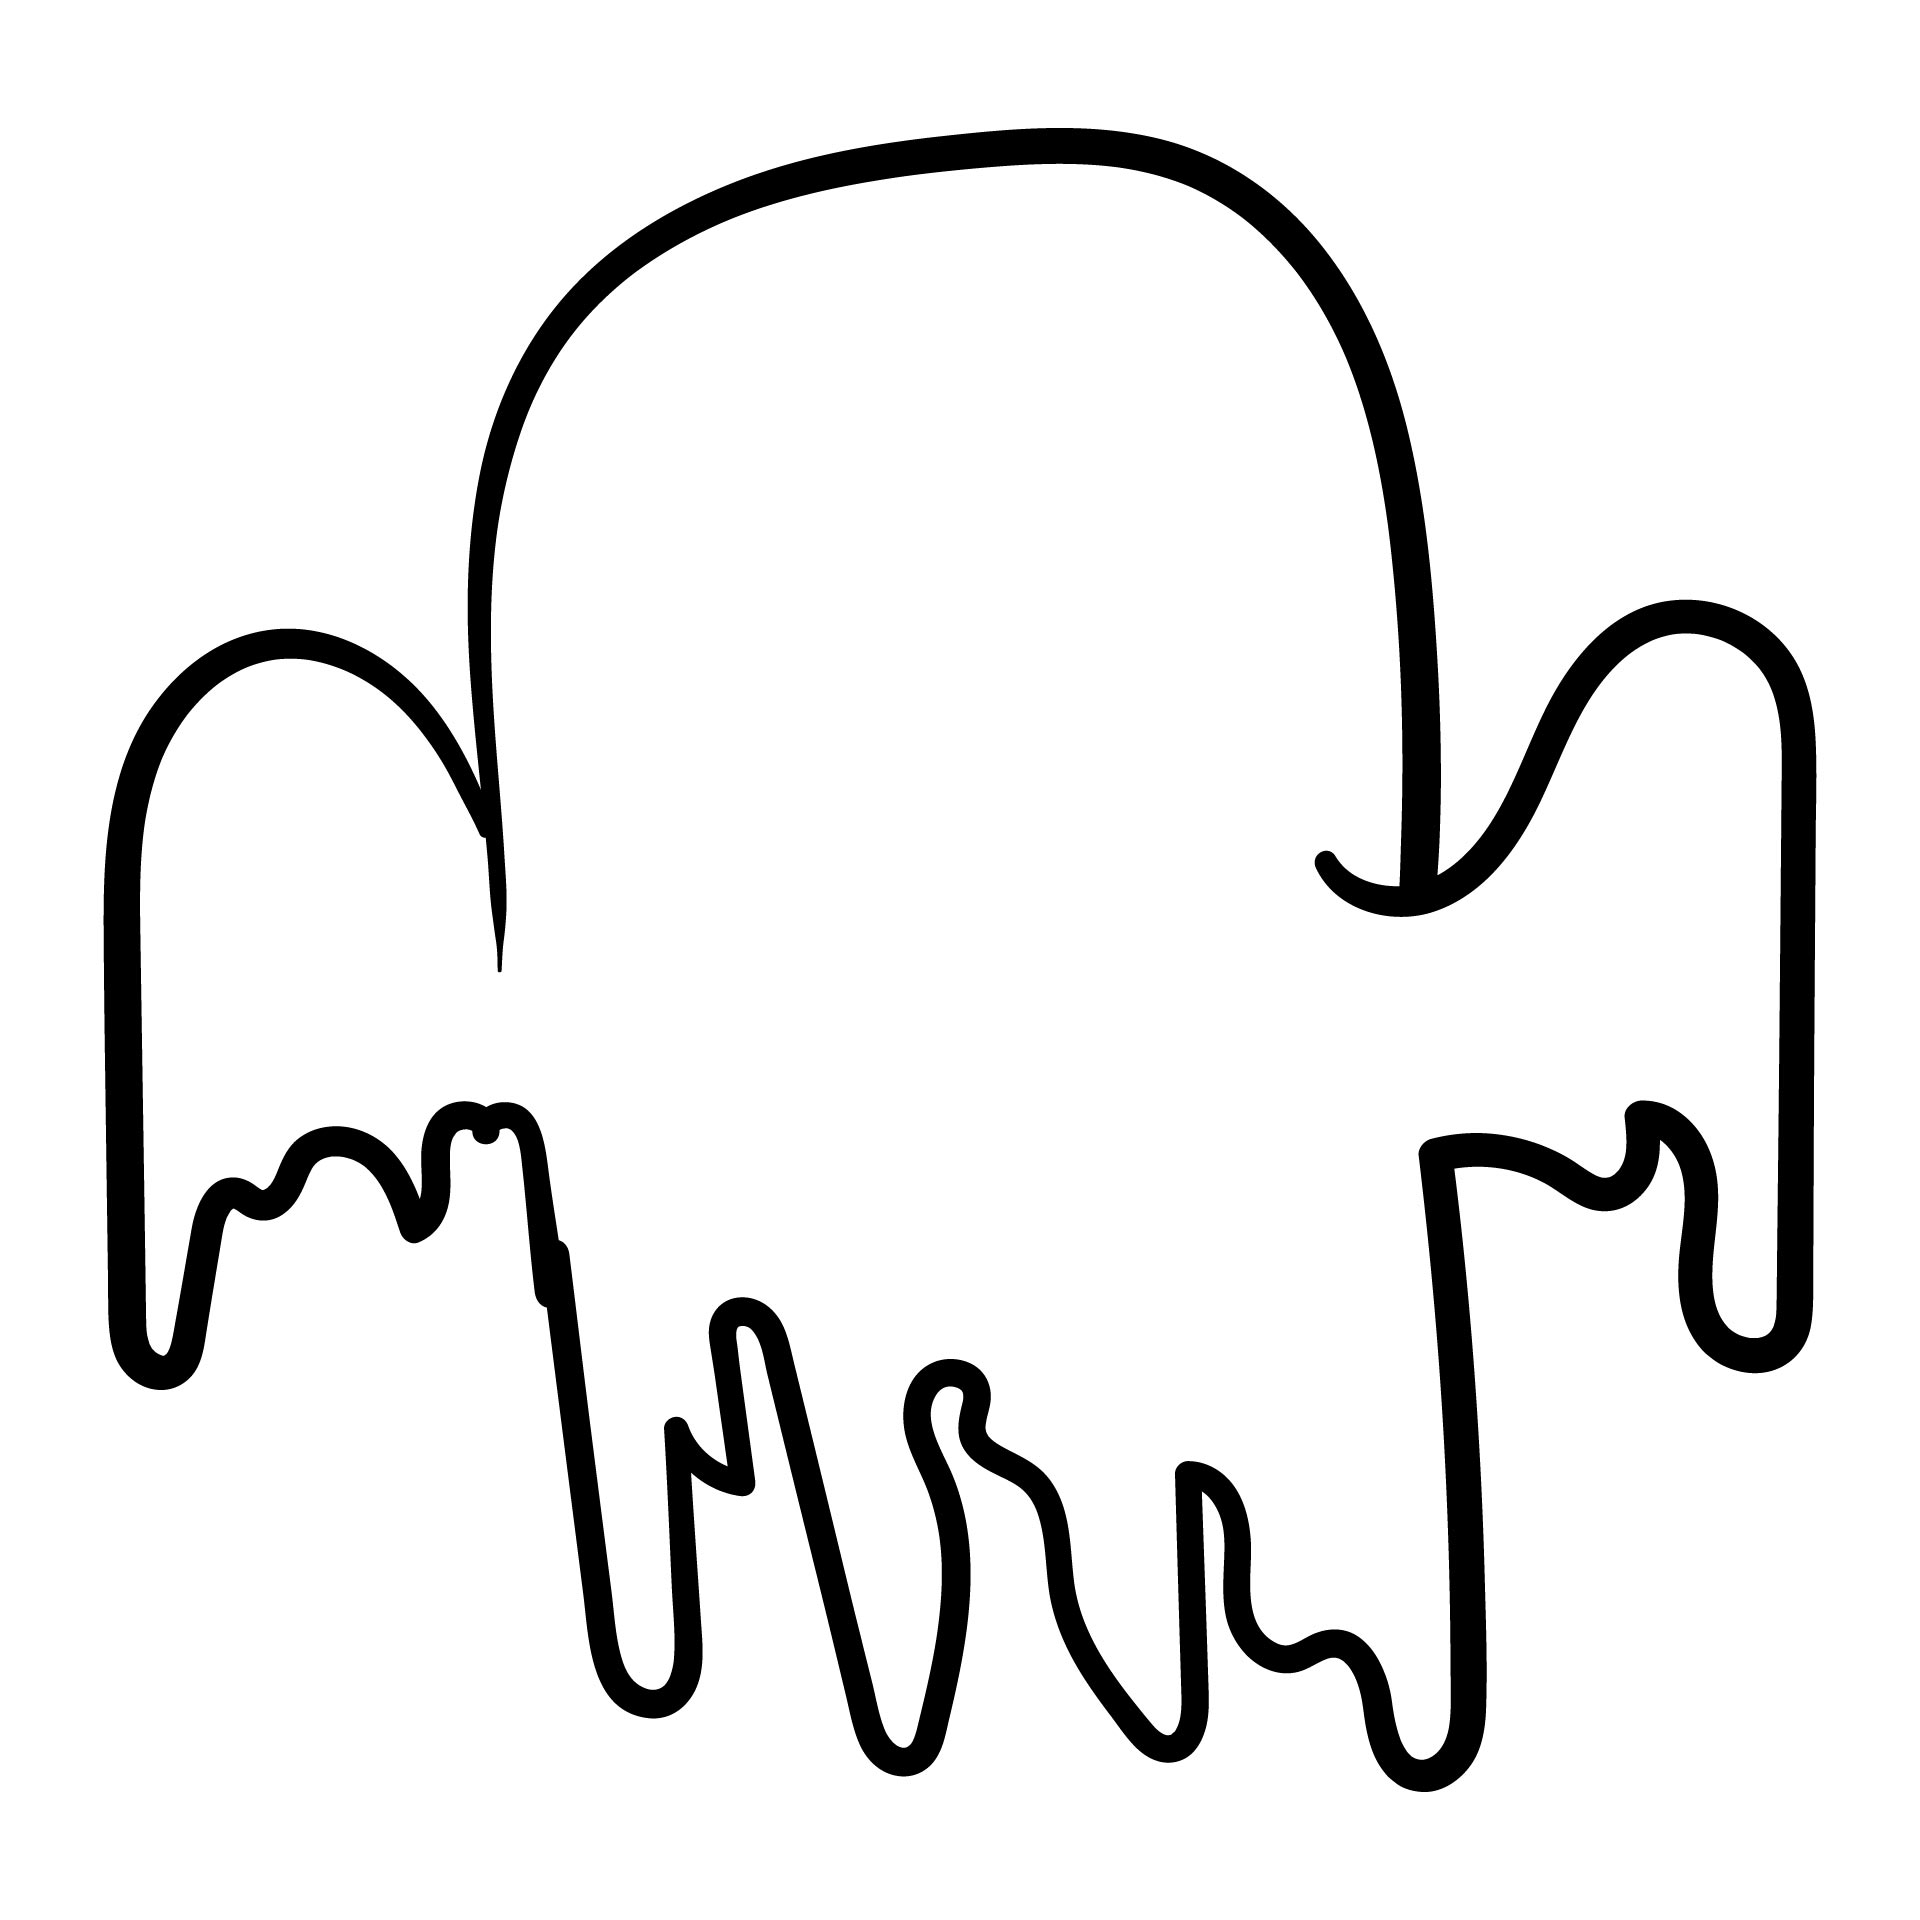 Halloween Ghost Templates To Cut Out